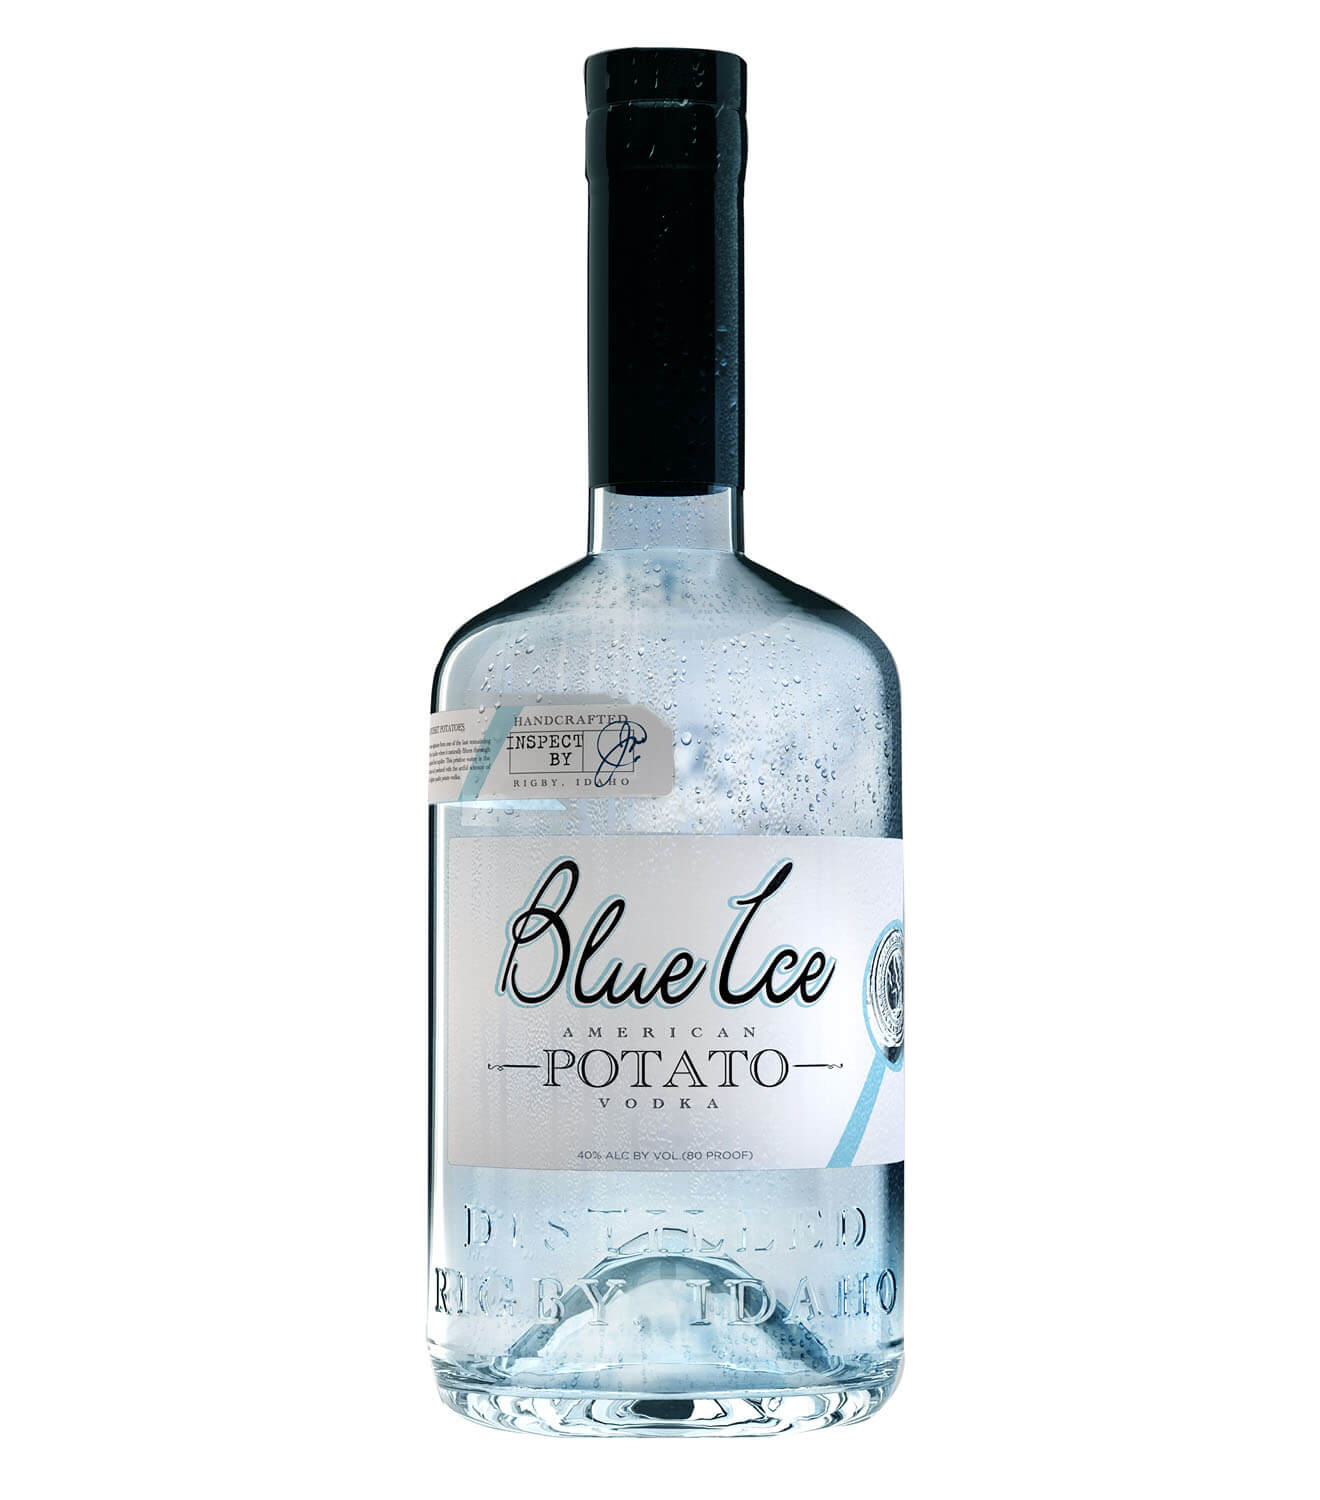 Blue Ice Vodka, bottle on white